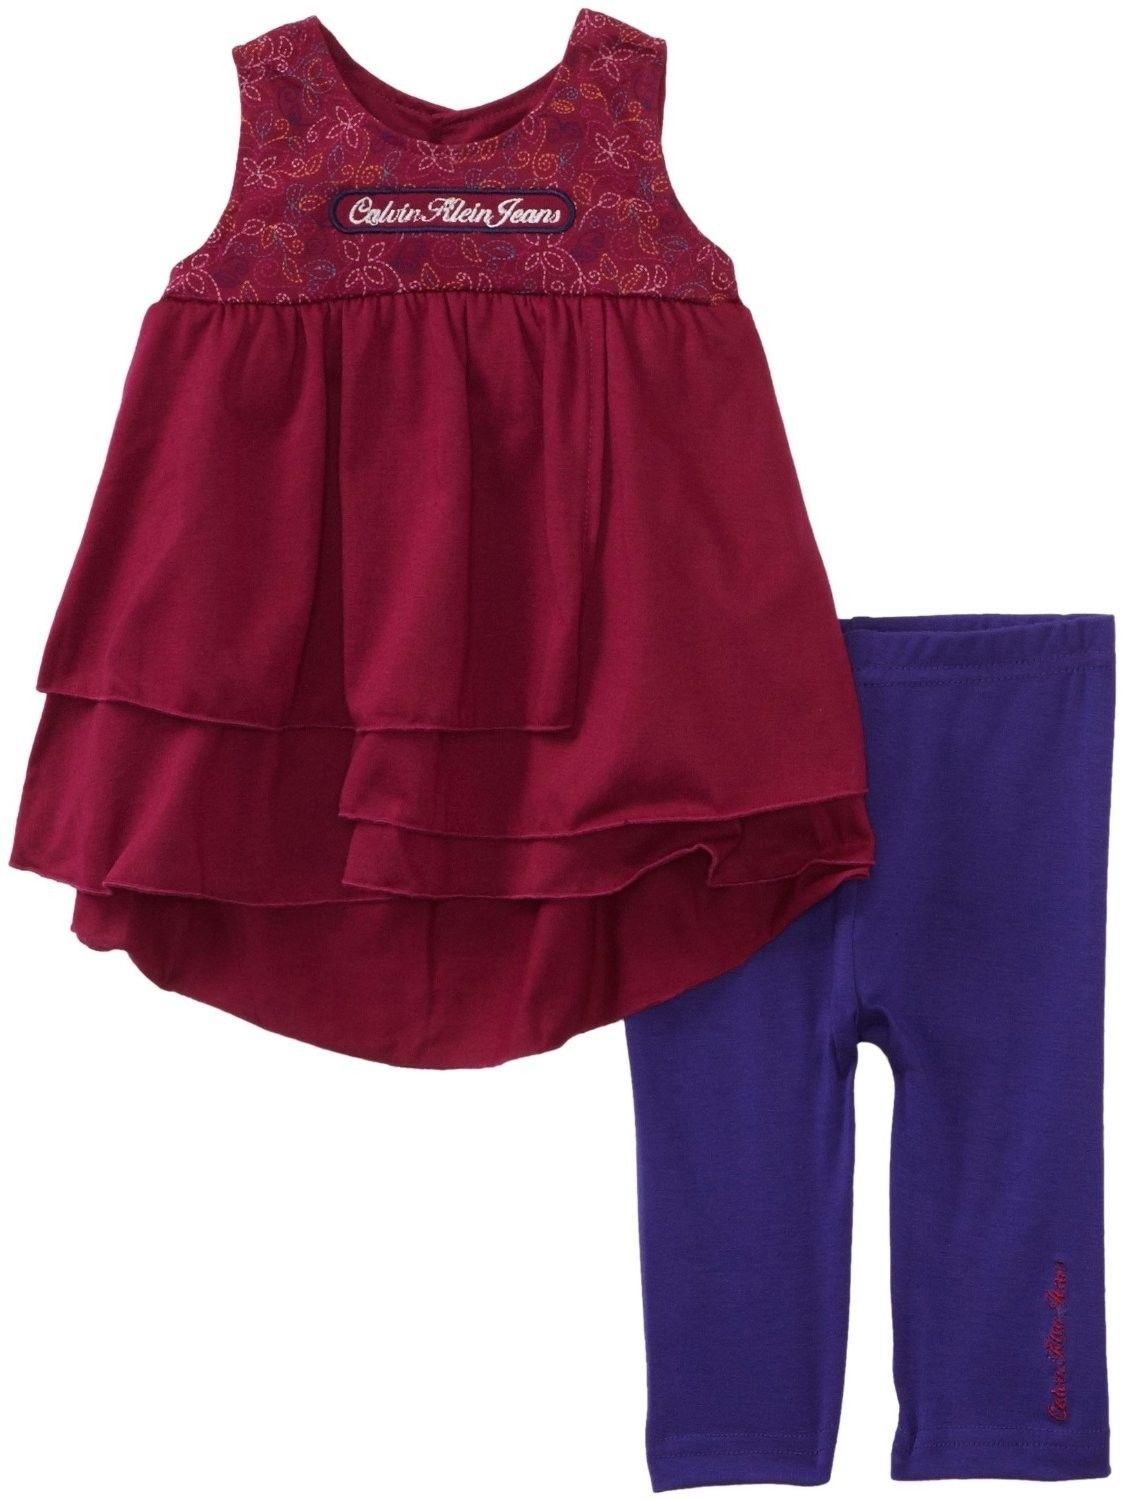 Calvin Klein Jeans 24 Mos Baby Girls 2-Piece Set Dark Pink Tank Top Shirt Purple Pants